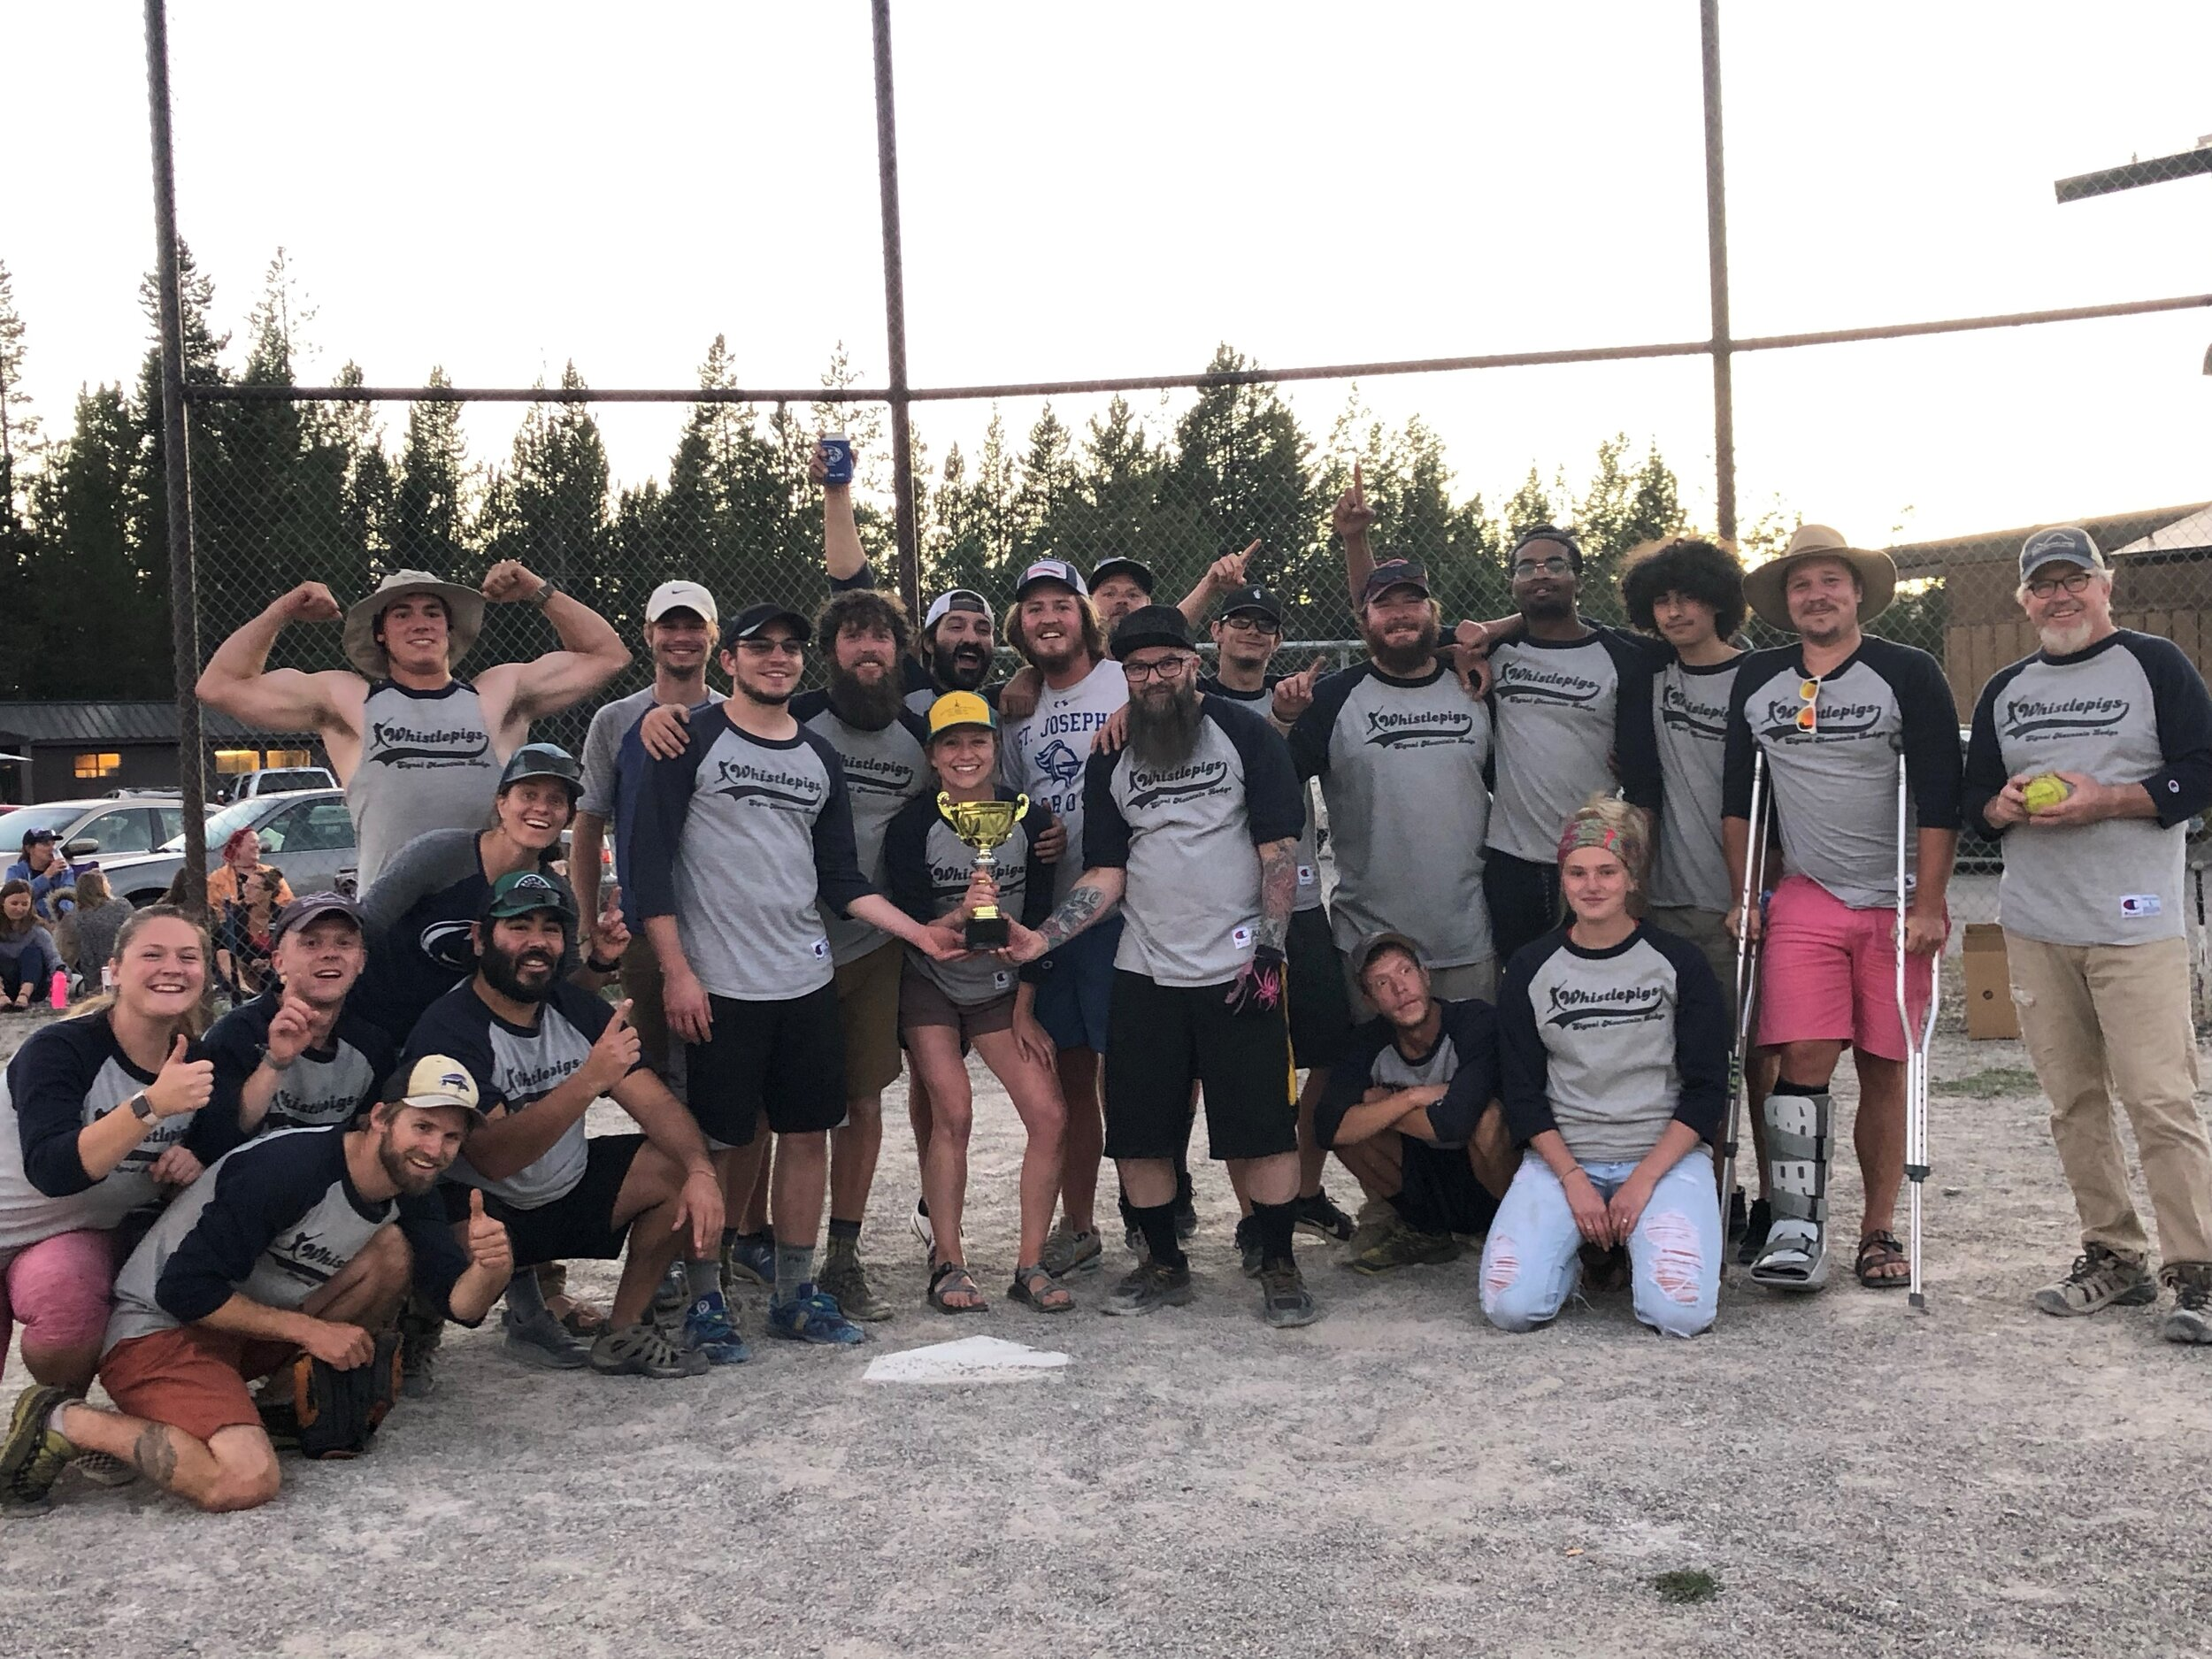 2019 Signal Mountain Lodge Whistlepigs - The Grand Teton National Park intramural softball league is one of the longest-standing traditions the summer season has to offer. Signal Mountain Lodge won the championship title in 2019. We're hoping to do it again in 2020!